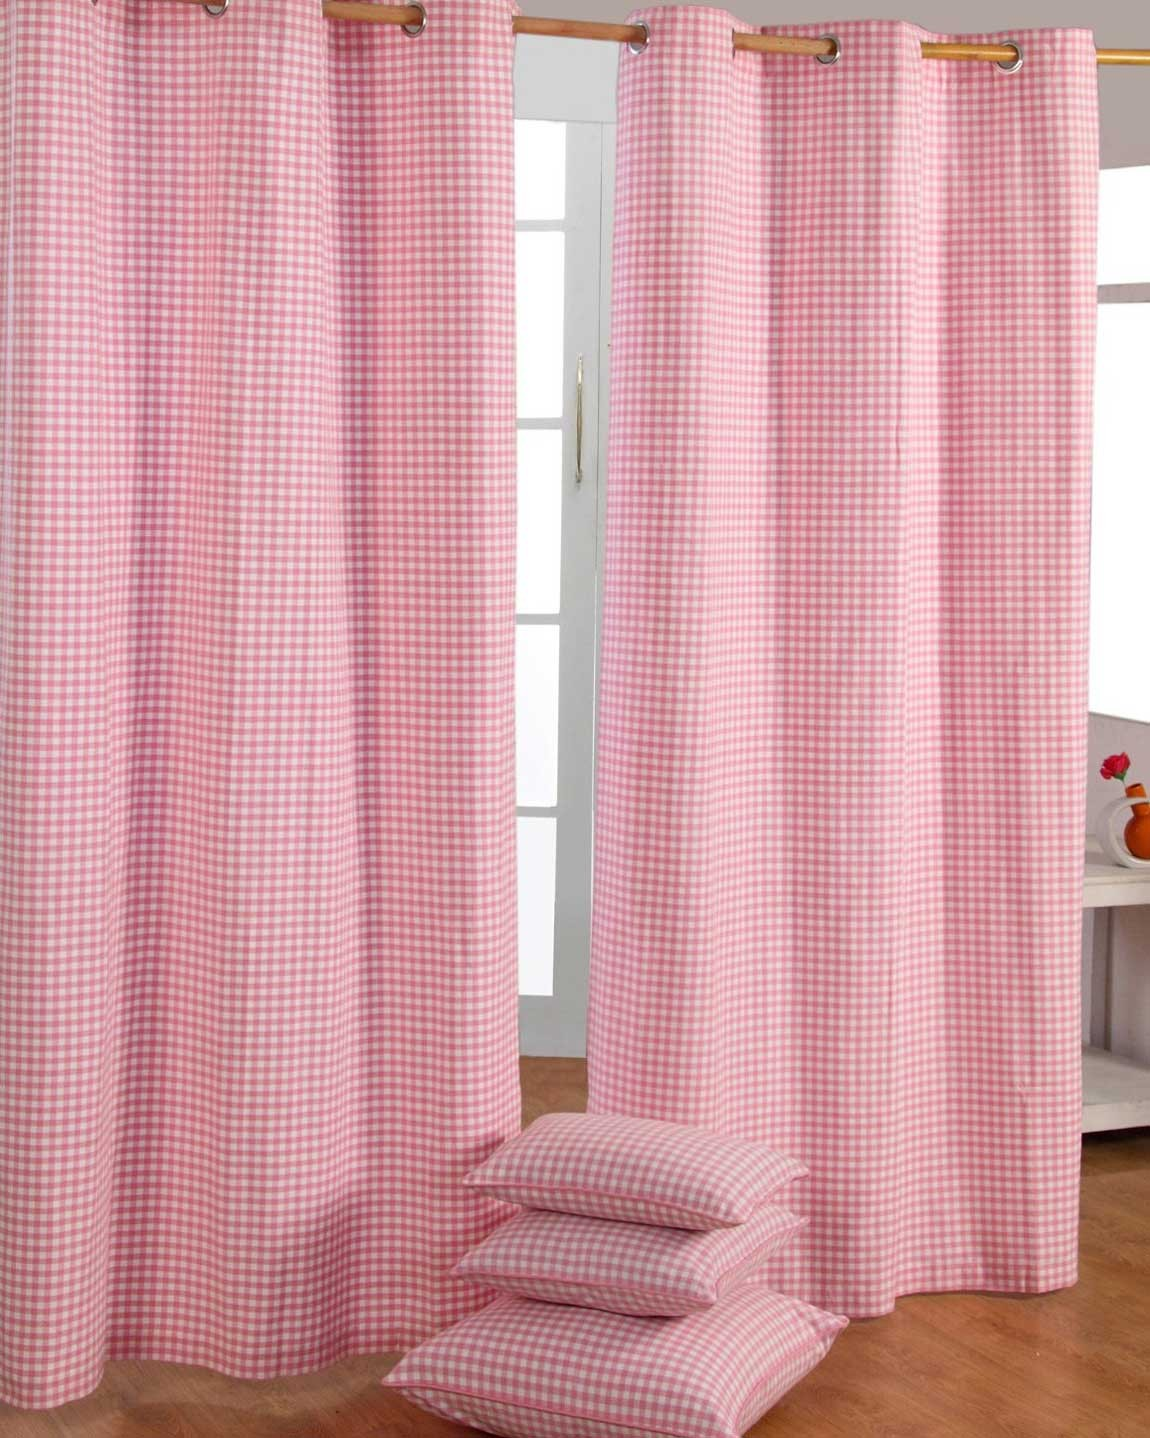 100_-cotton-ready-made-curtains-gingham-check